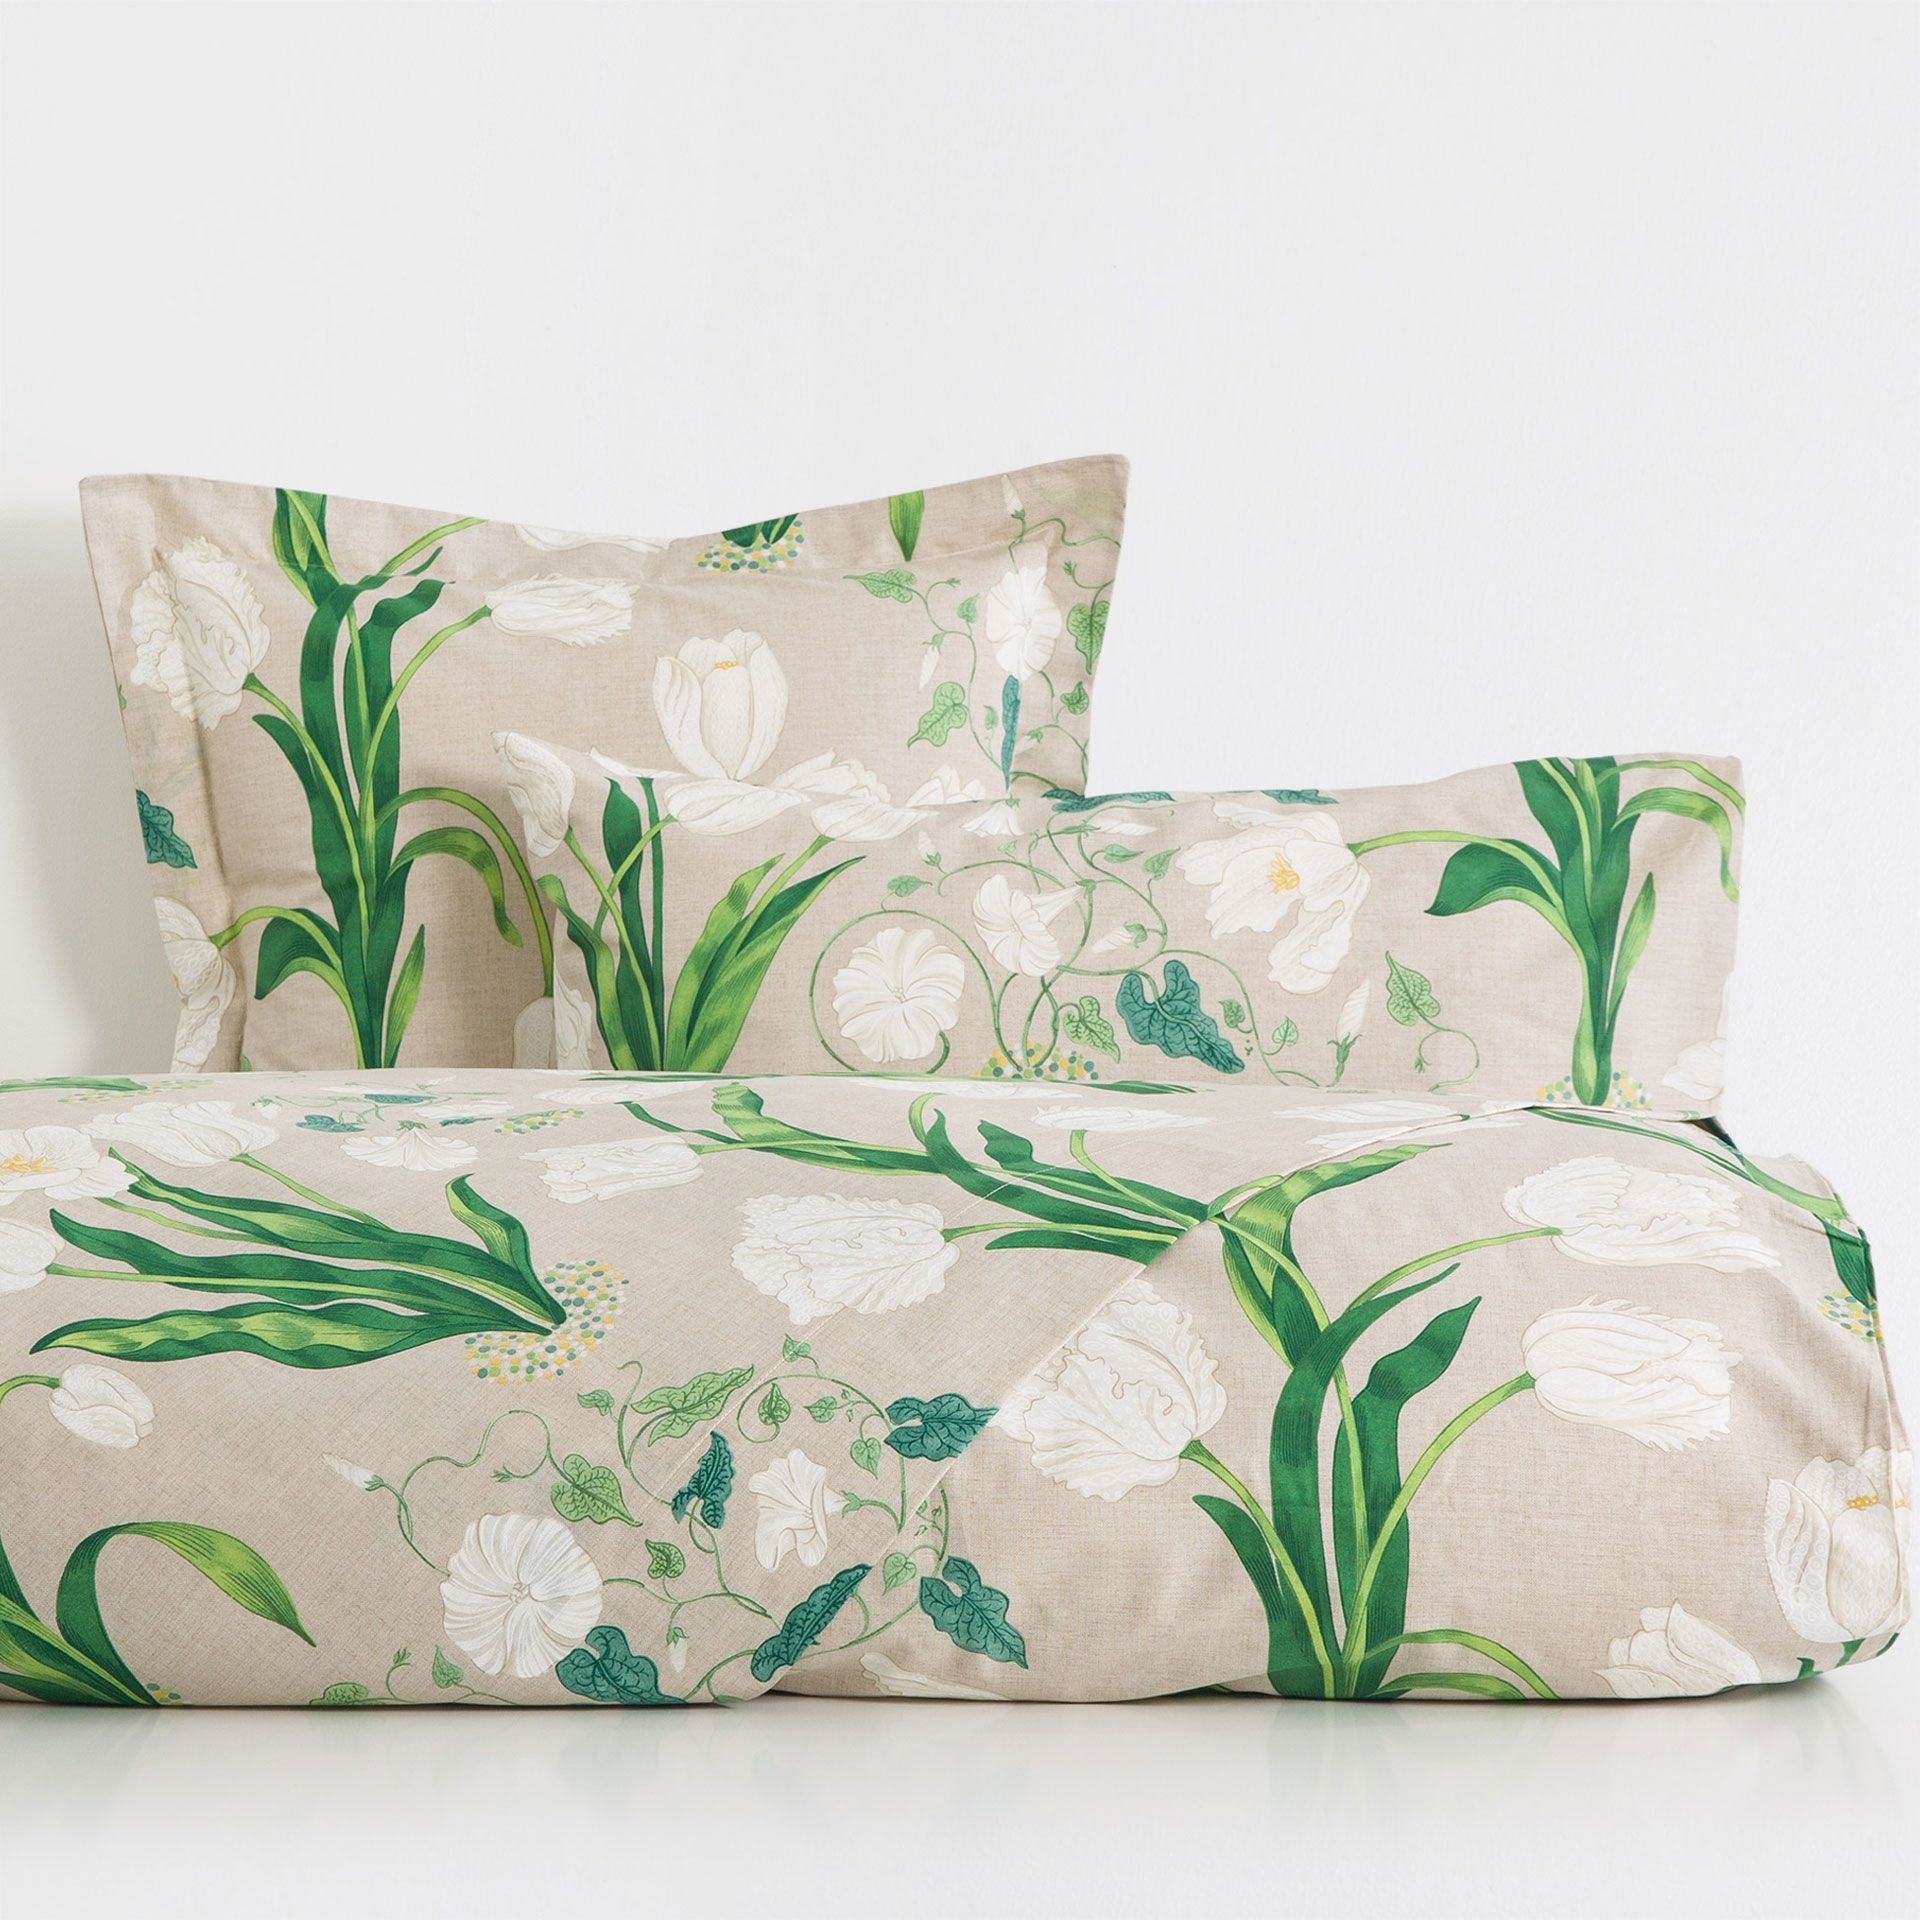 Tulip Print Bed Linen Bed Linen Linens And Printing # Meuble Tv Zara Home